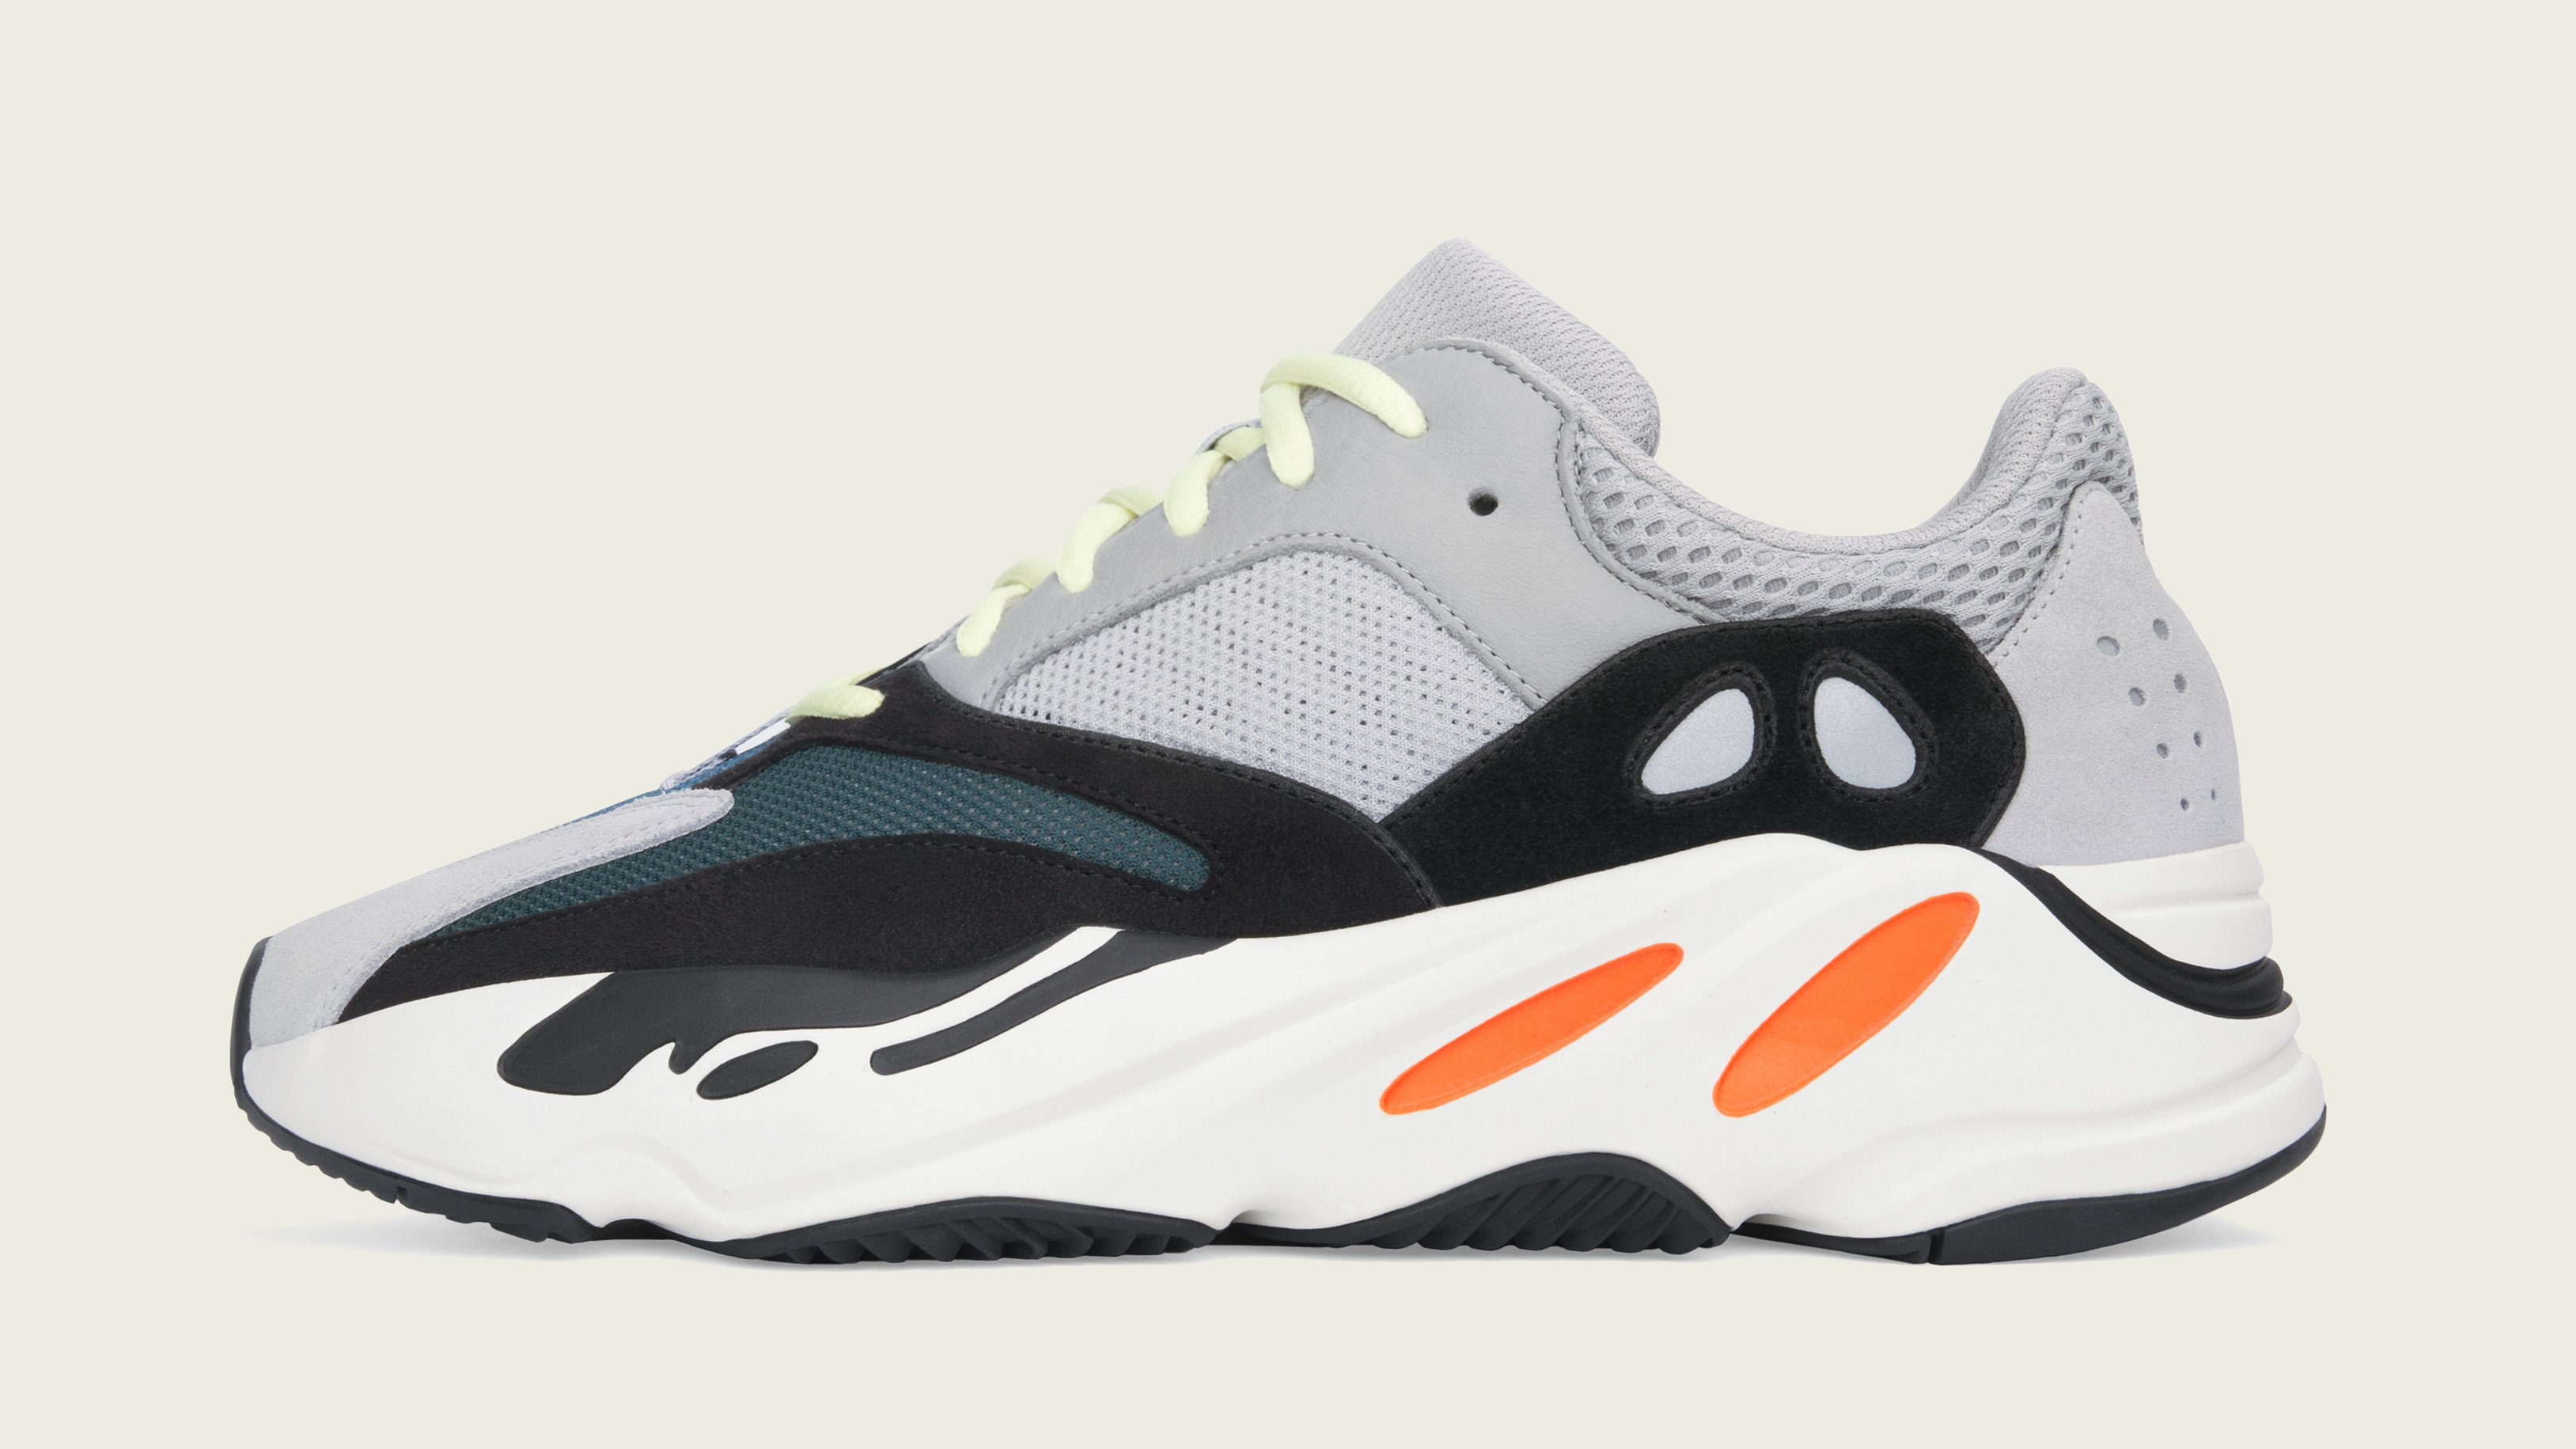 fed2397cd32 Adidas Yeezy Boost 700  Wave Runner  B75571 September Restock